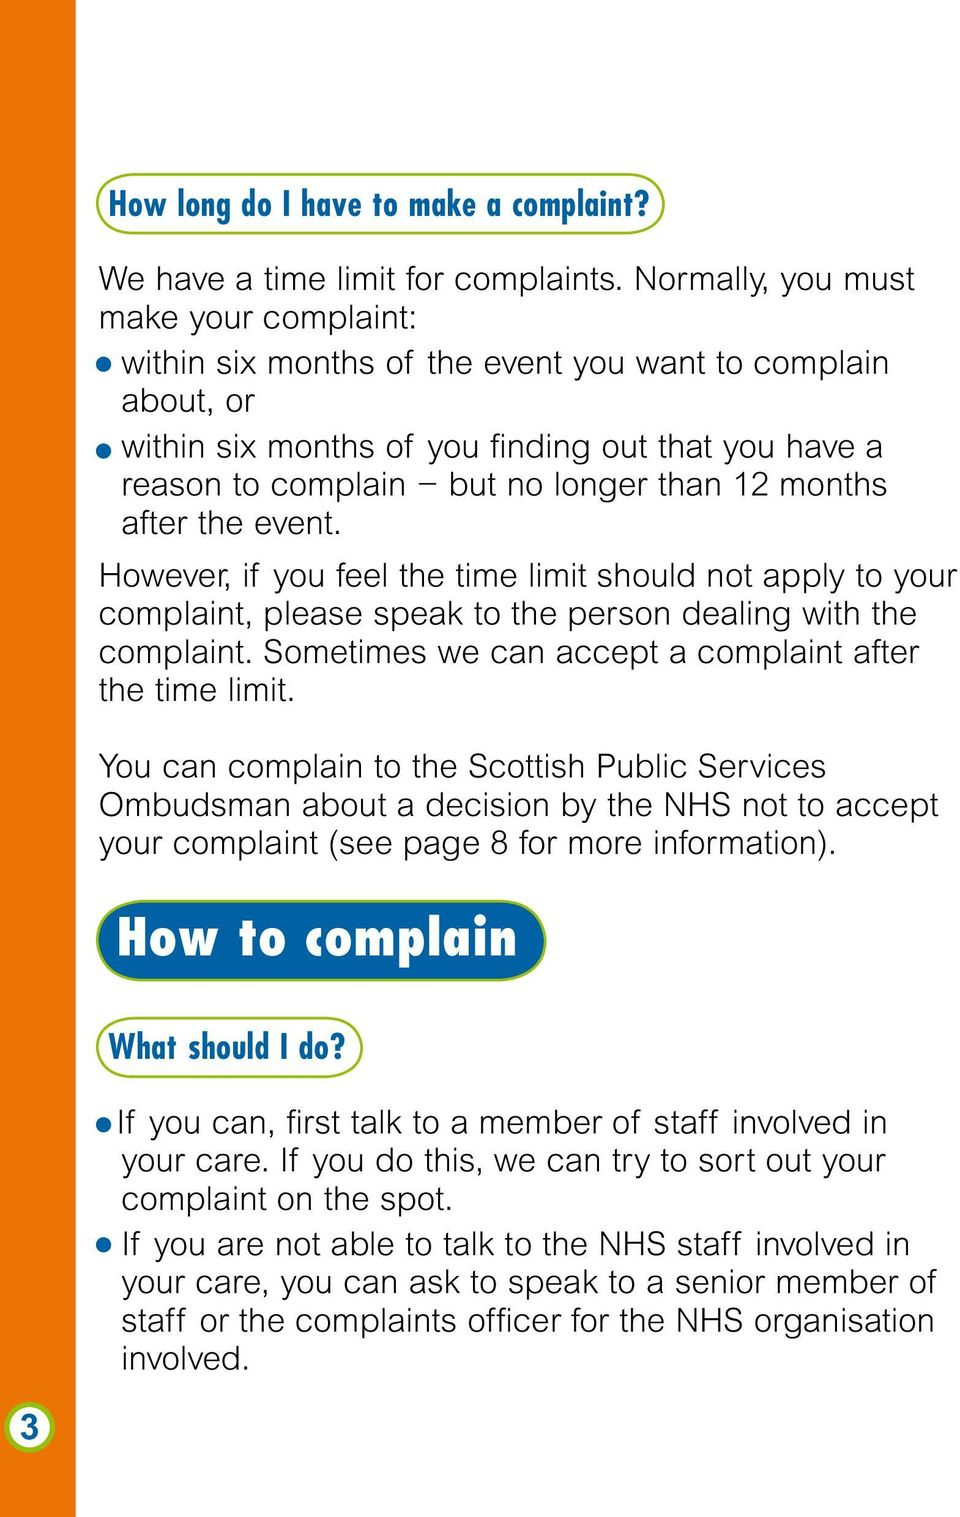 months after the event. However, if you feel the time limit should not apply to your complaint, please speak to the person dealing with the complaint.